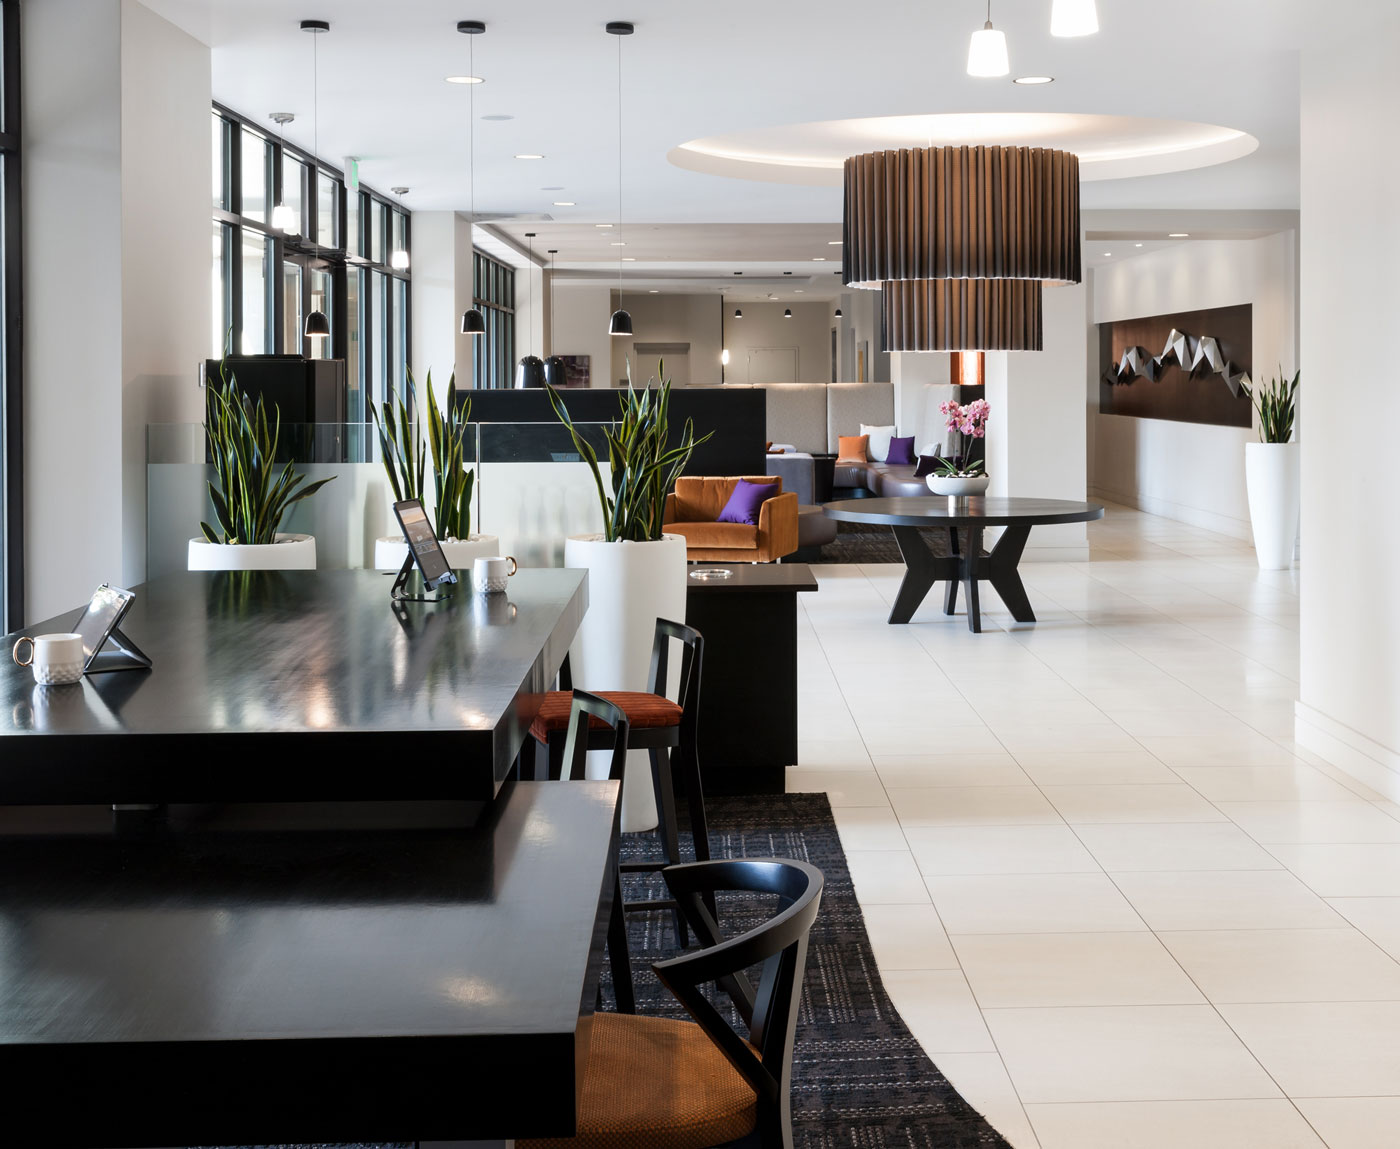 Work Stations In Apartment Merchandised With High End Modern Design White Floors And Dark